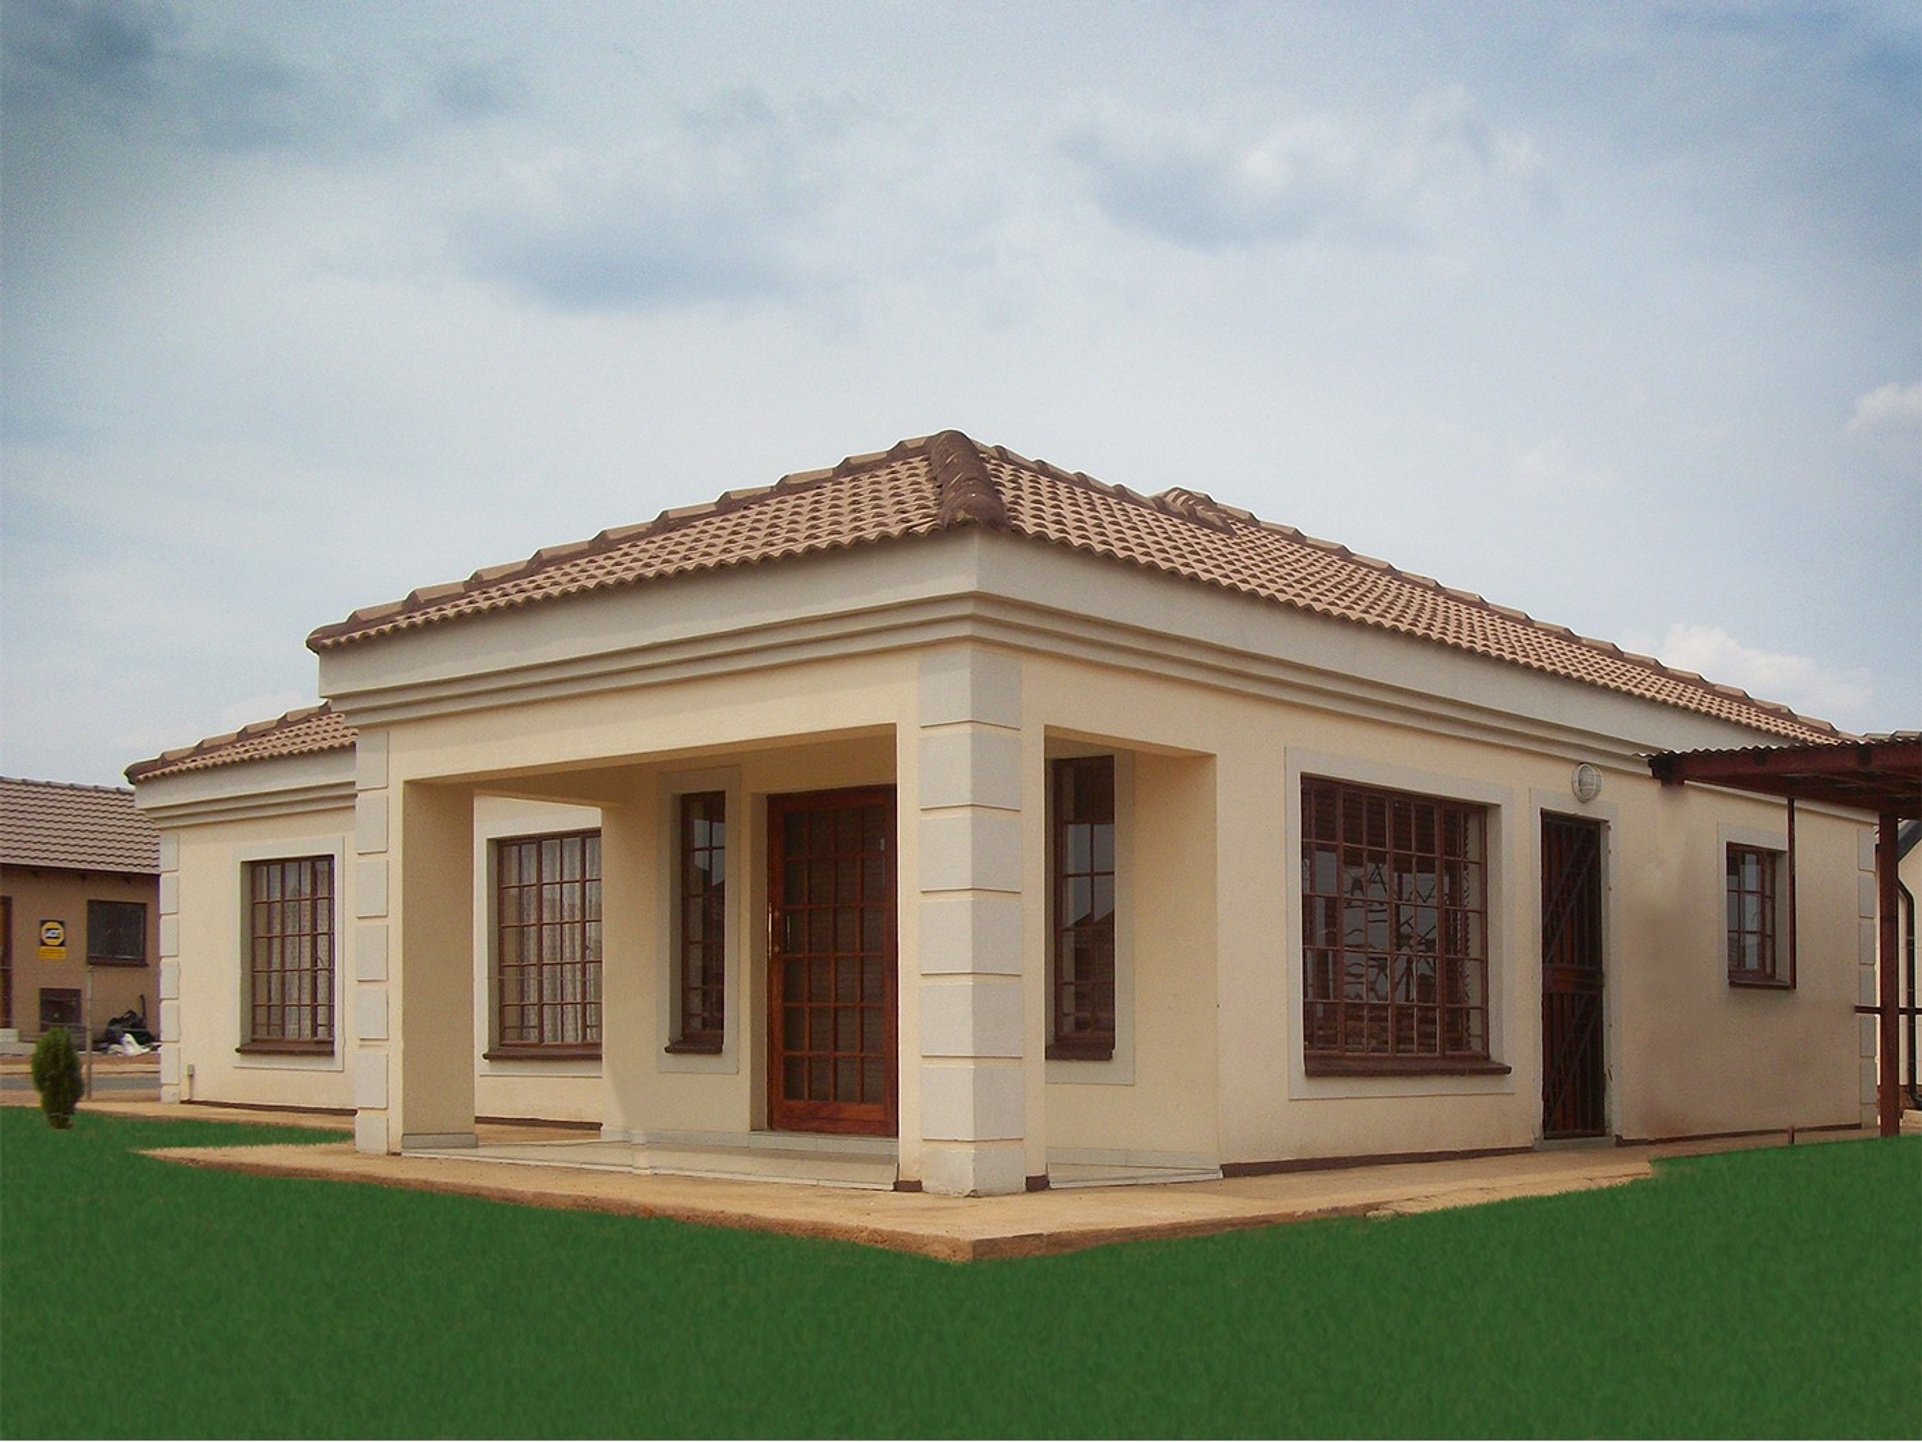 3 bedroom tuscan house plans in south africa for House blueprints for sale